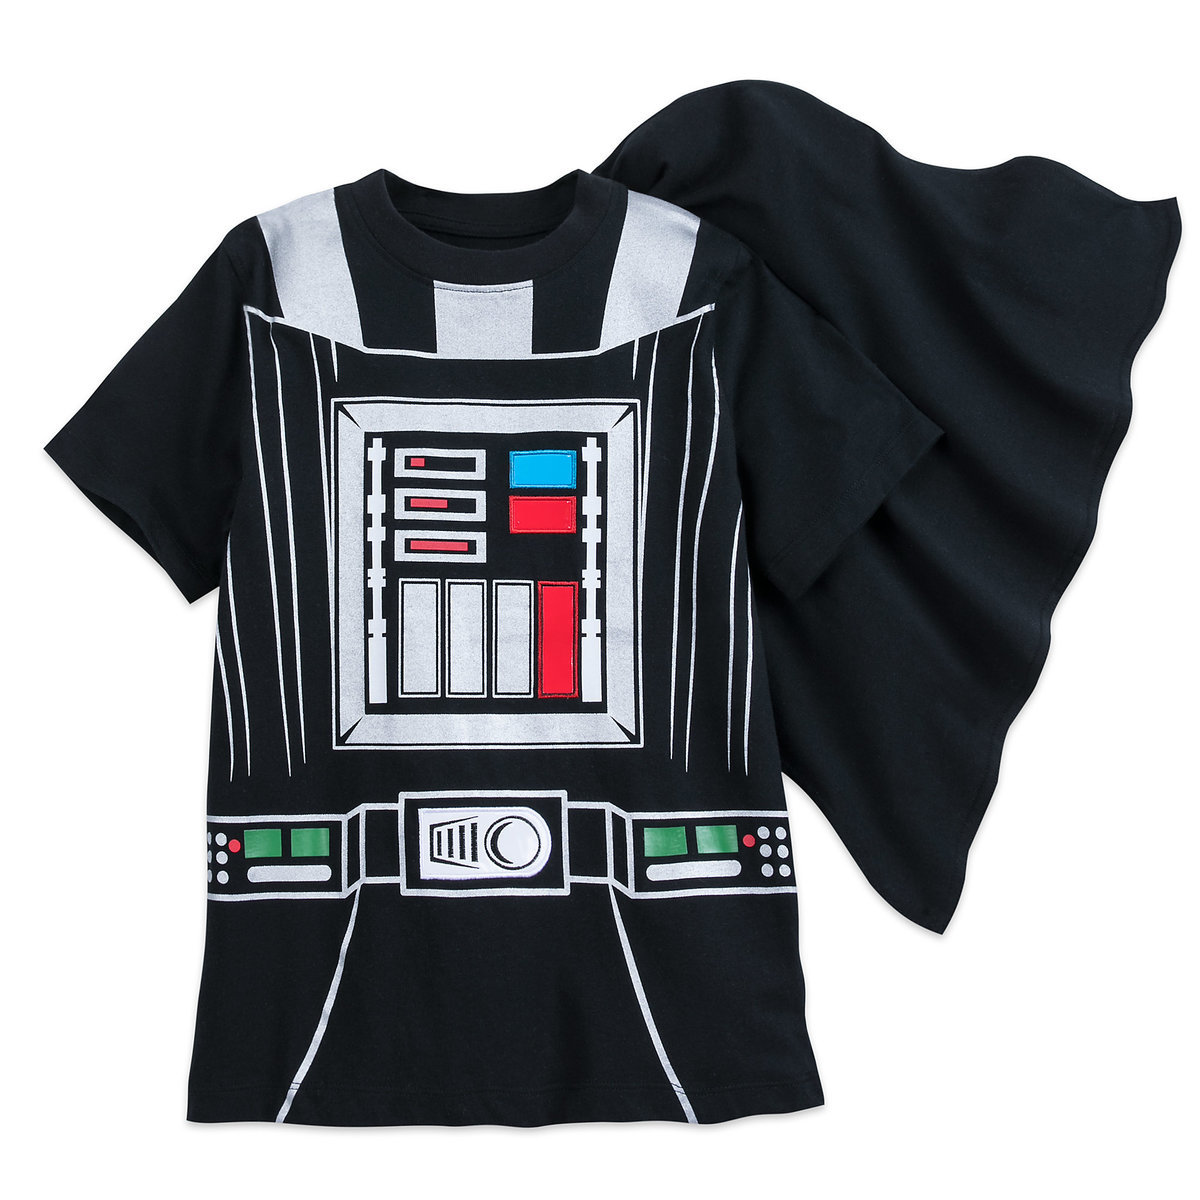 Disney Child Shirt - Star Wars Darth Vader Costume